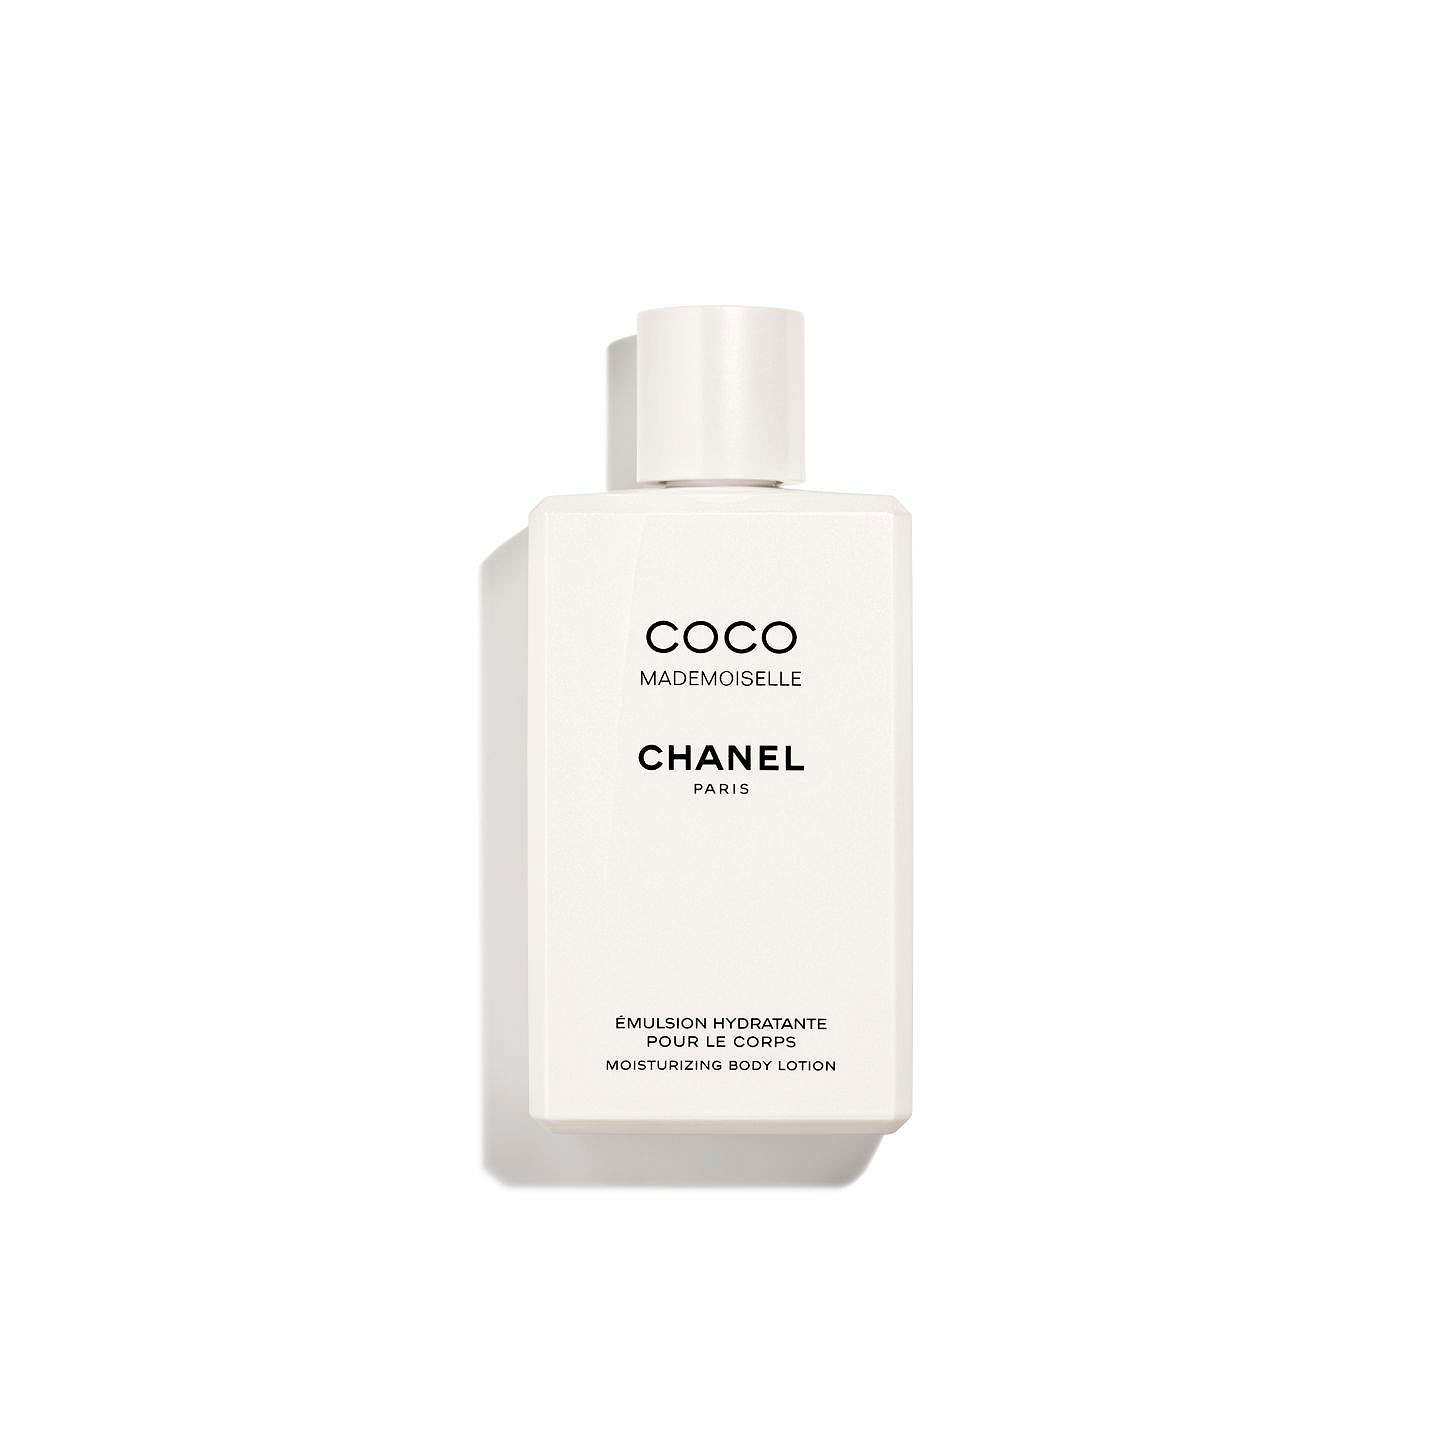 CHANEL COCO MADEMOISELLE Moisturising Body Lotion at John ...